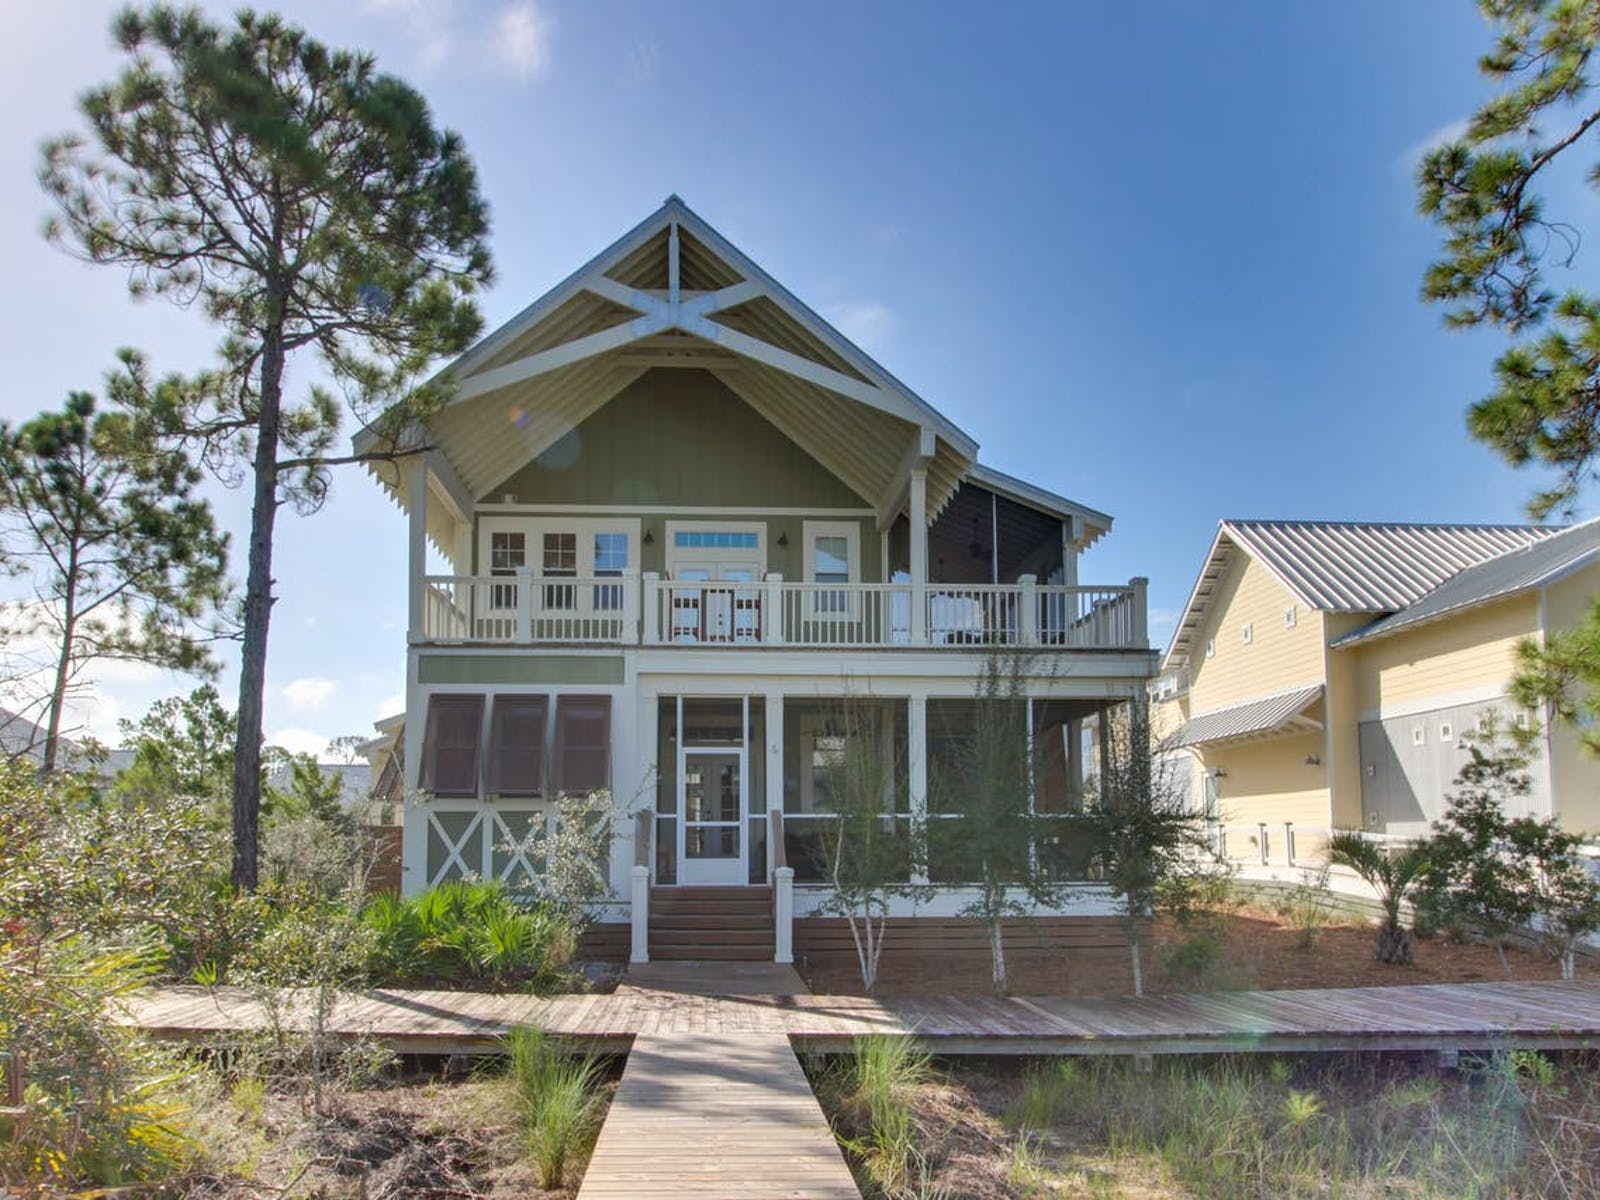 vacation home on the beach in Port St. Joe